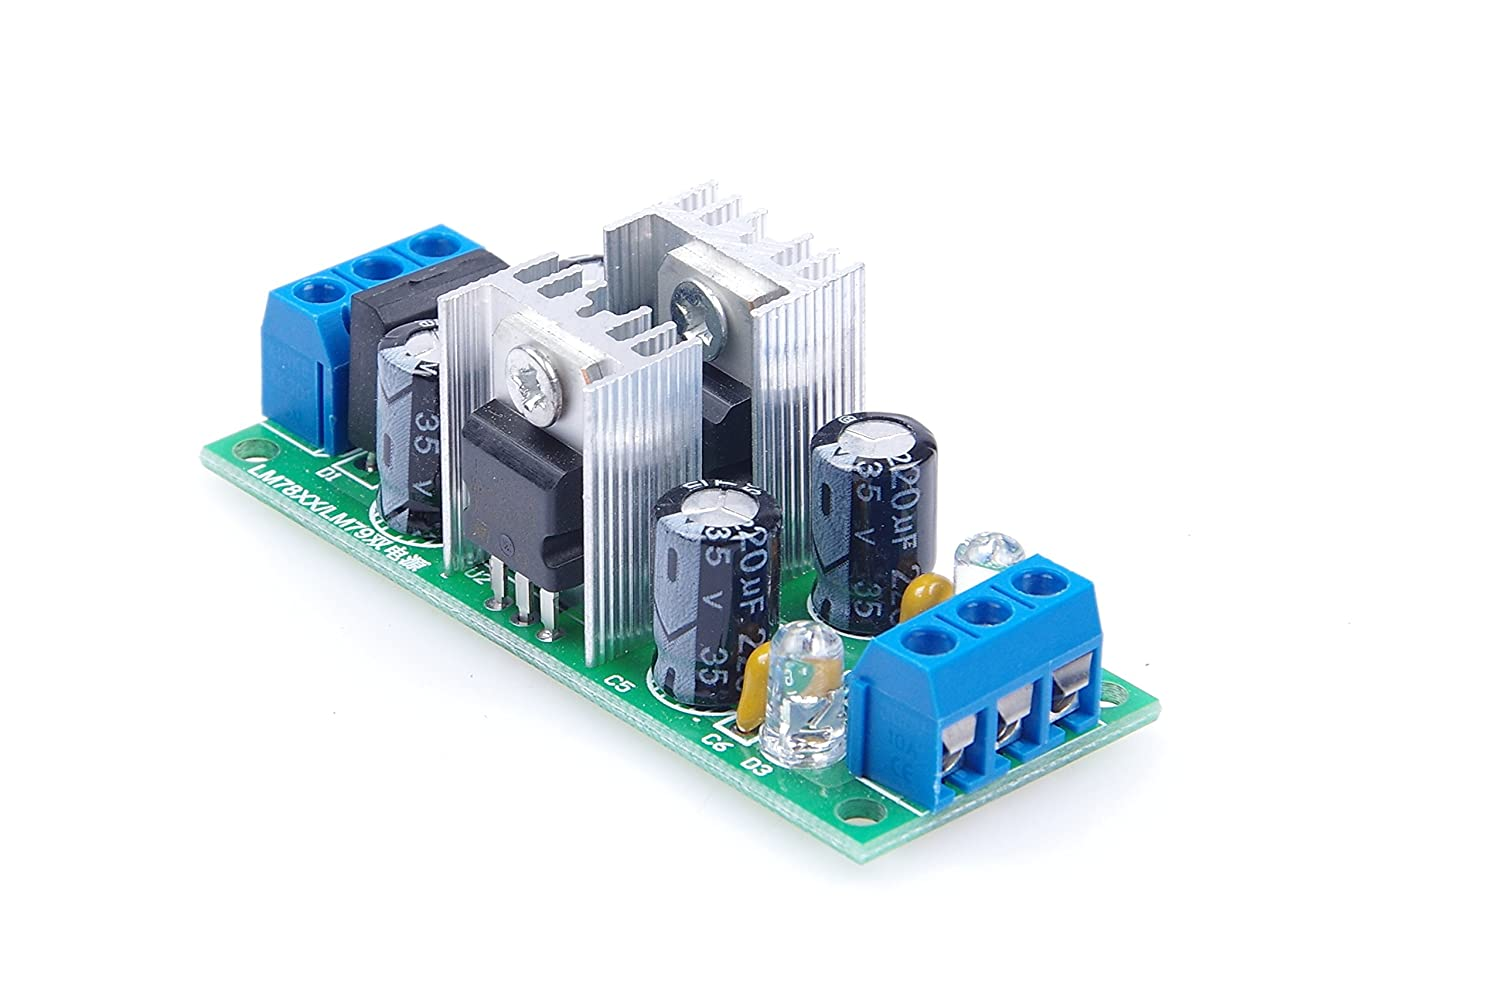 Knacro Lm7815 Lm7915 Dual Voltage Regulator Three Circuit Power Supply 15v 1a By Ic 7815 7915 Hd Walls Terminal Module With Rectifier Bridge